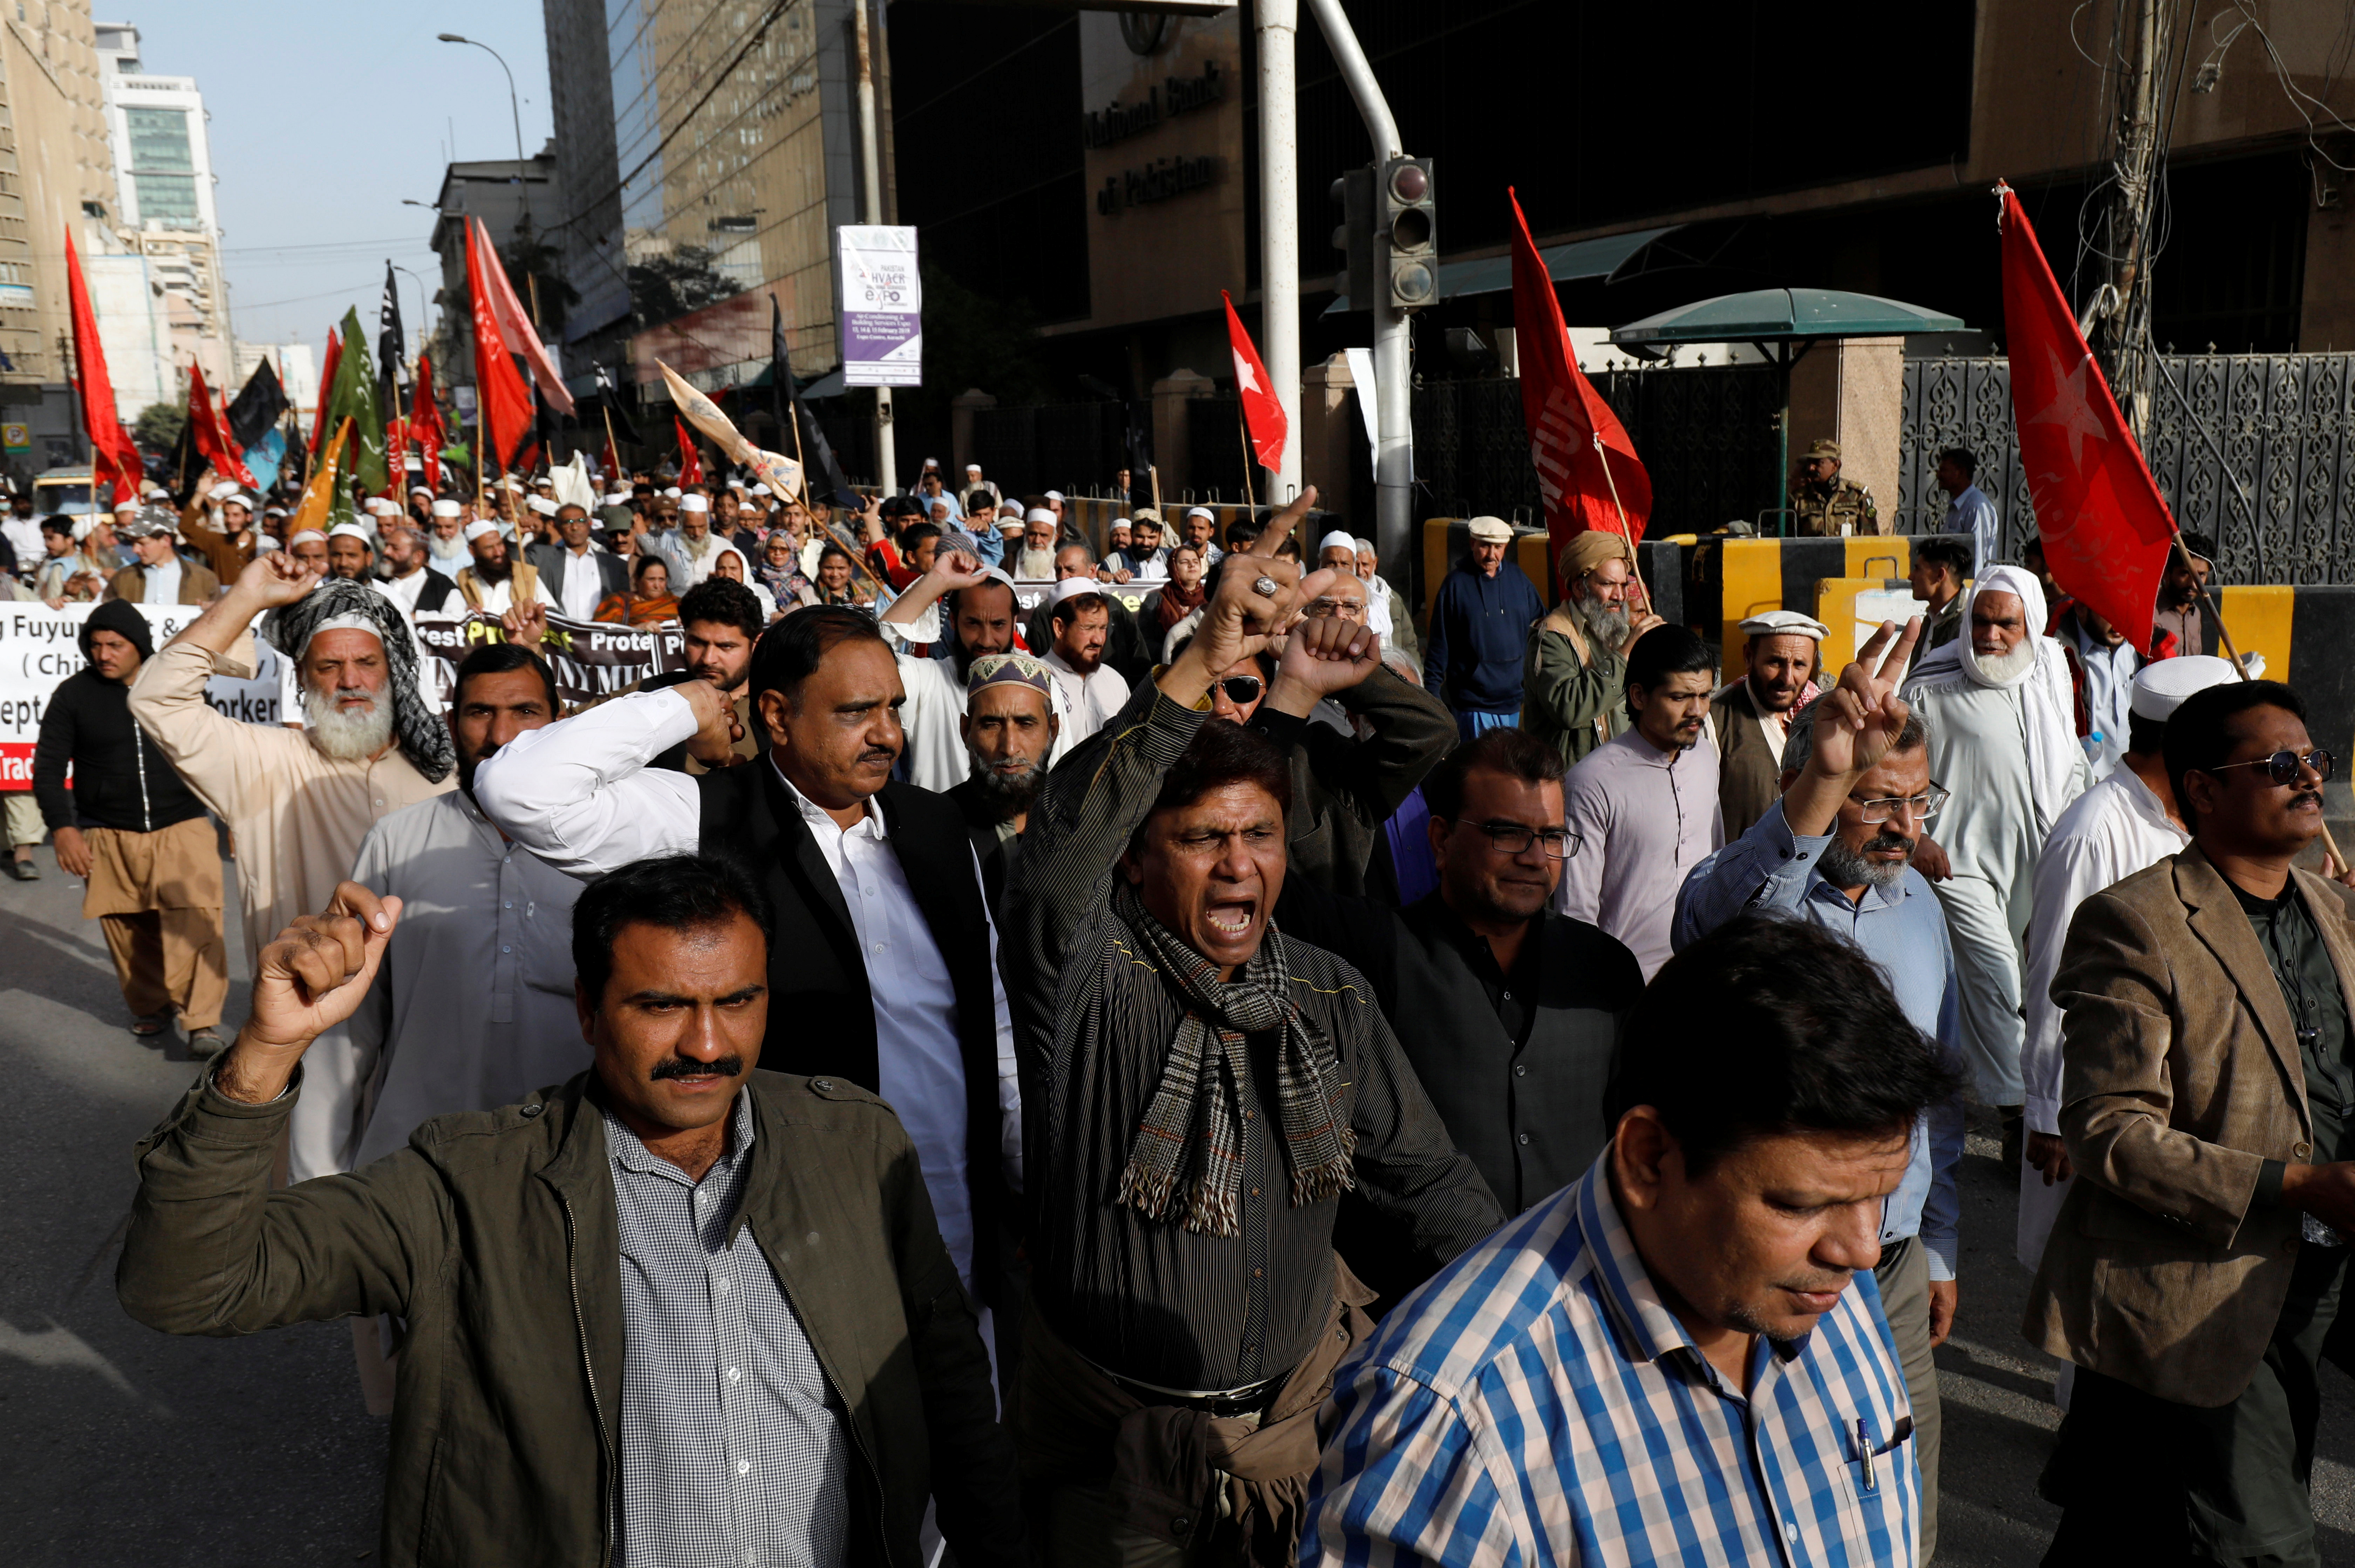 Journalists and social activists chant slogans during a rally protest which they say is against layoffs and the non-payment of salaries, in Karachi, Pakistan Feb. 8, 2019.